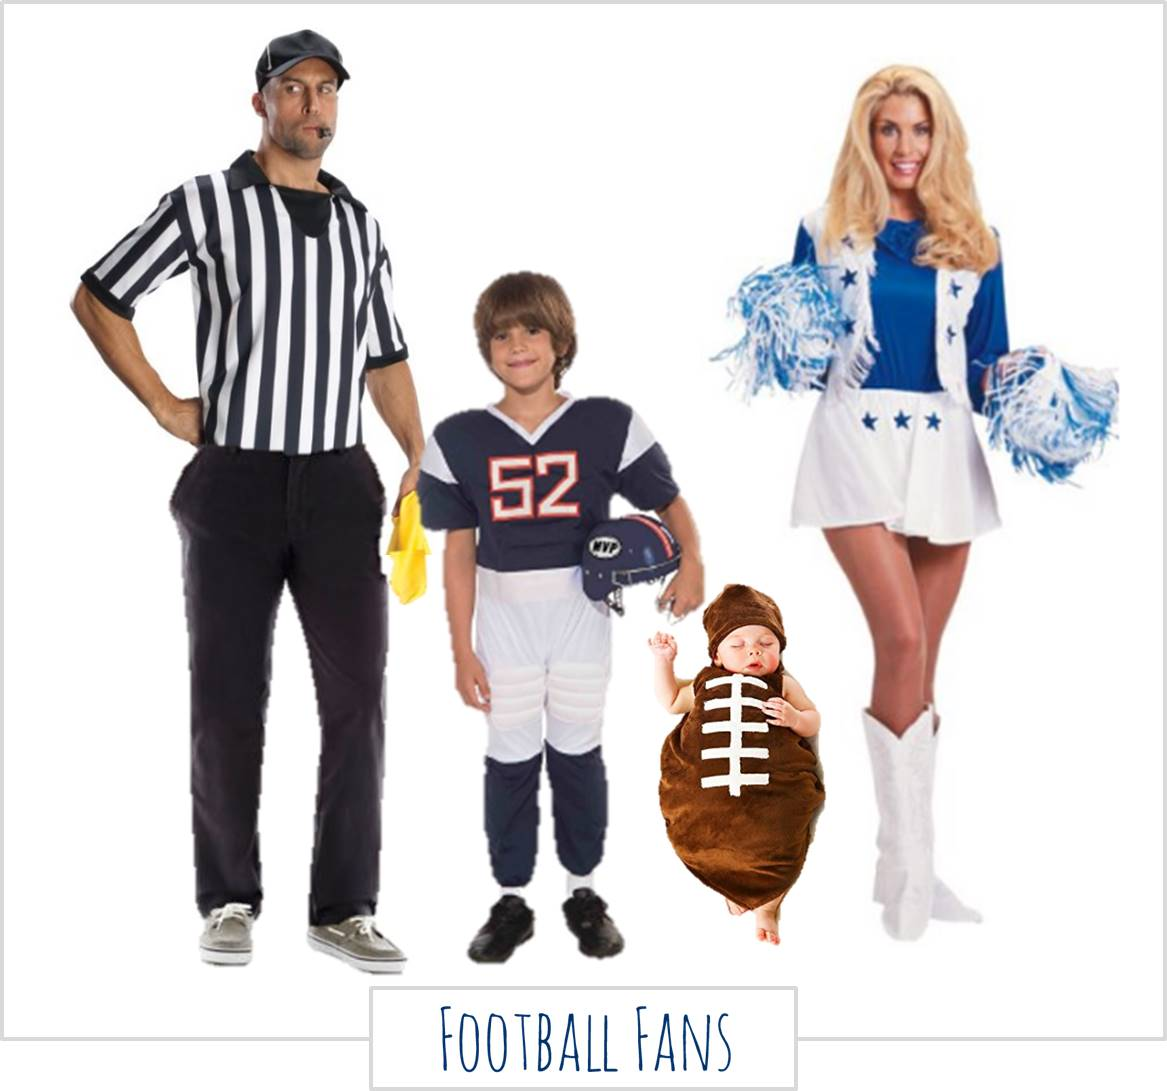 Football fans,  Halloween Costumes for the Whole Family